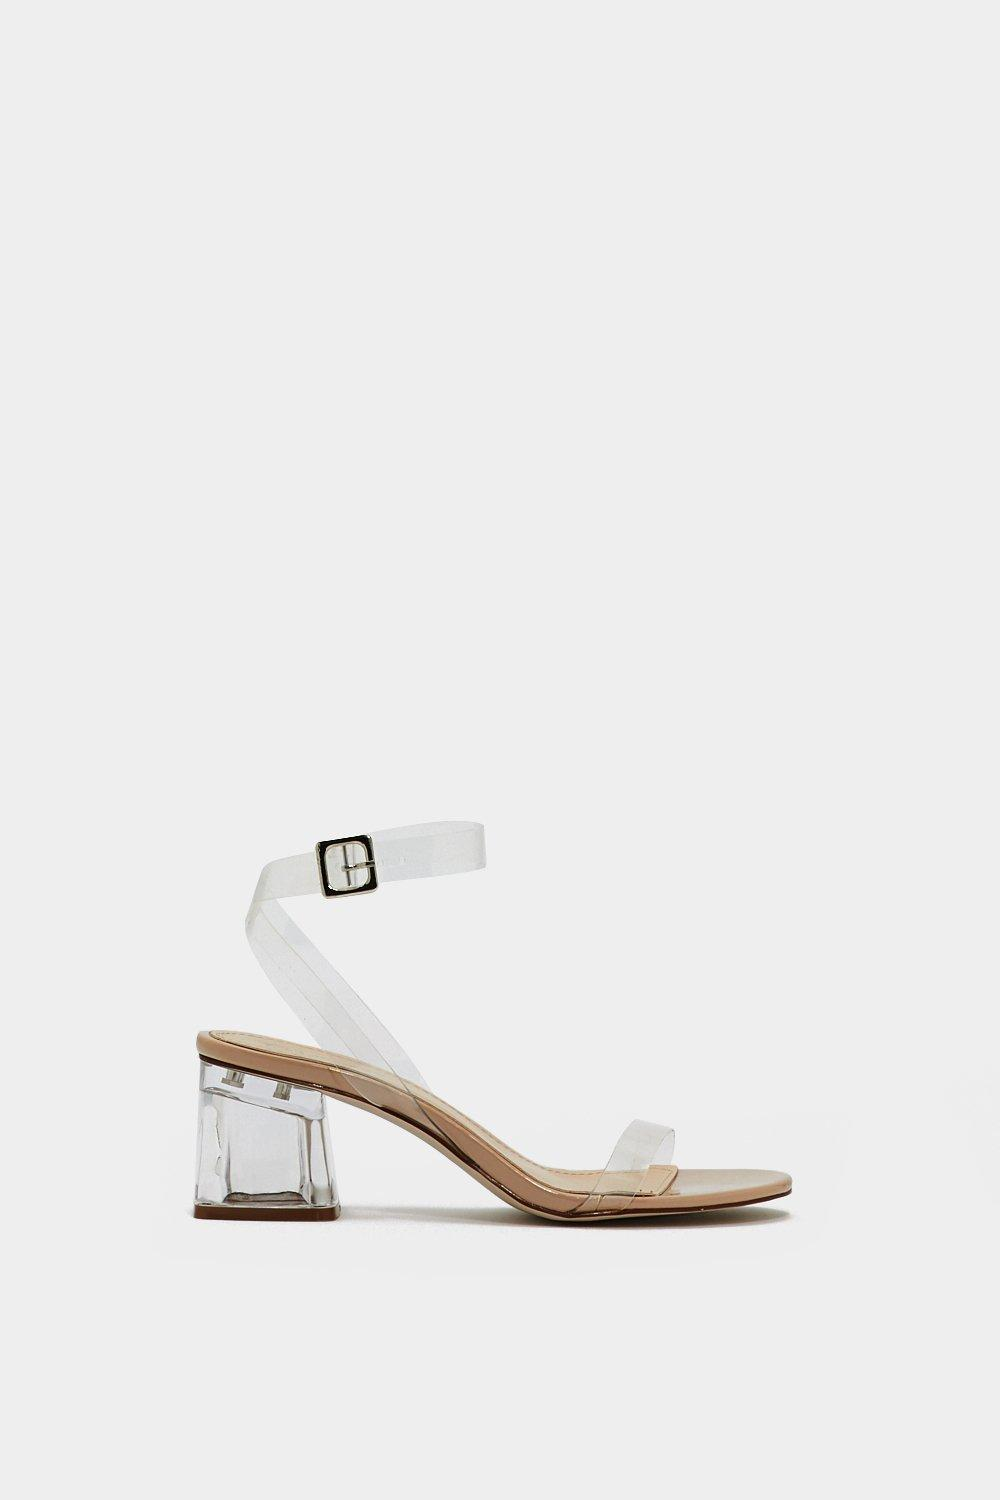 clear The Air Low Heel